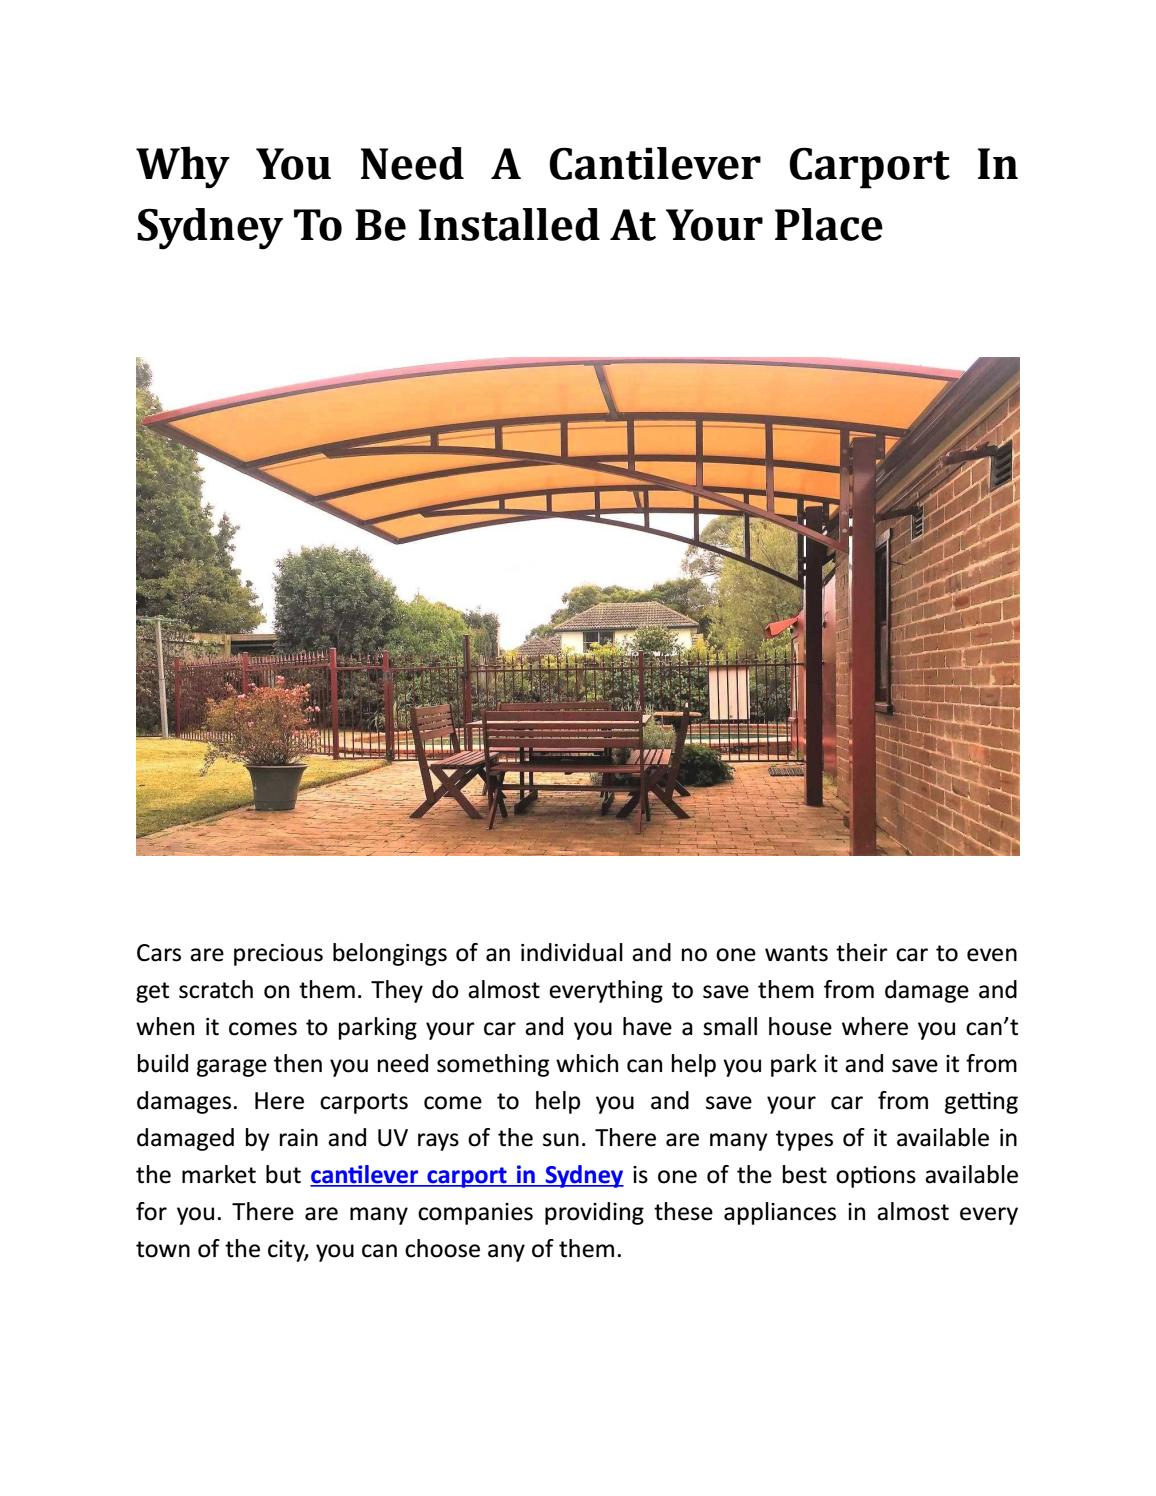 Why You Need A Cantilever Carport In Sydney To Be Installed